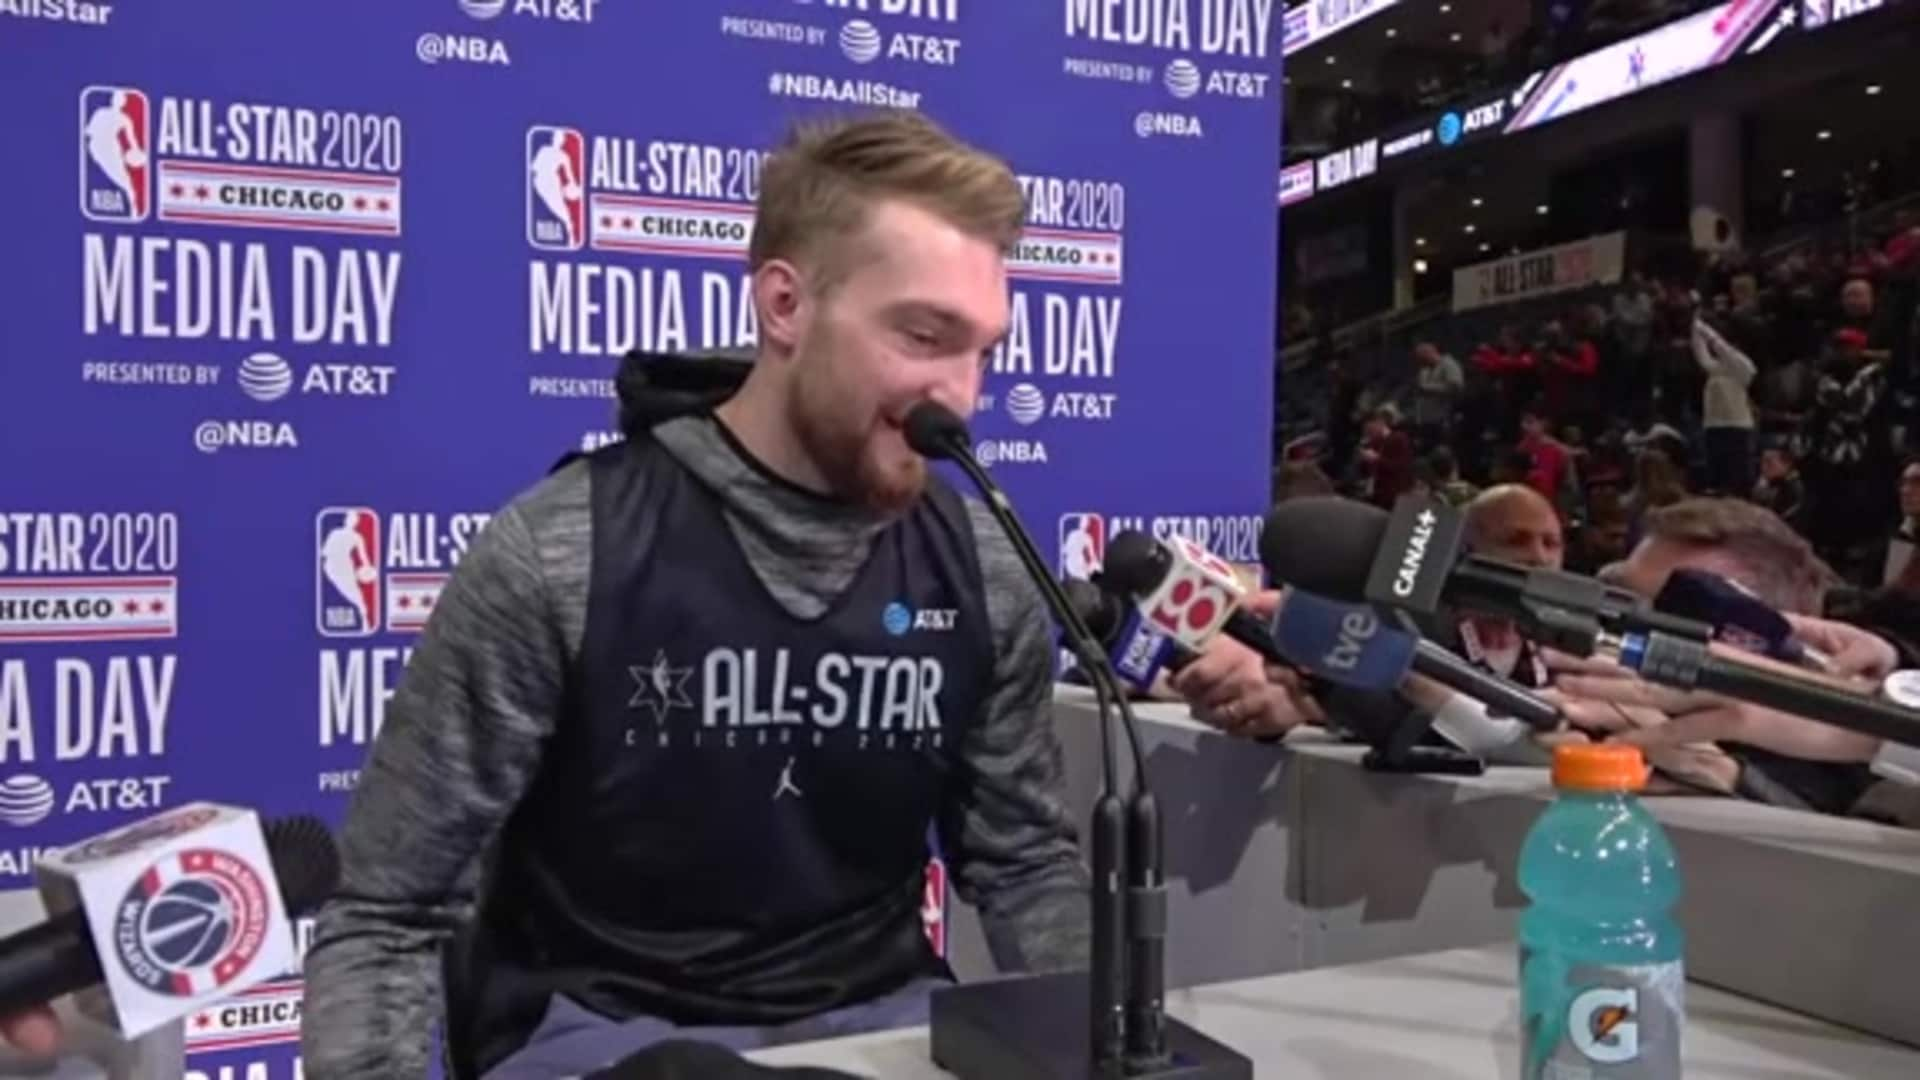 Sabonis on All-Star Experience